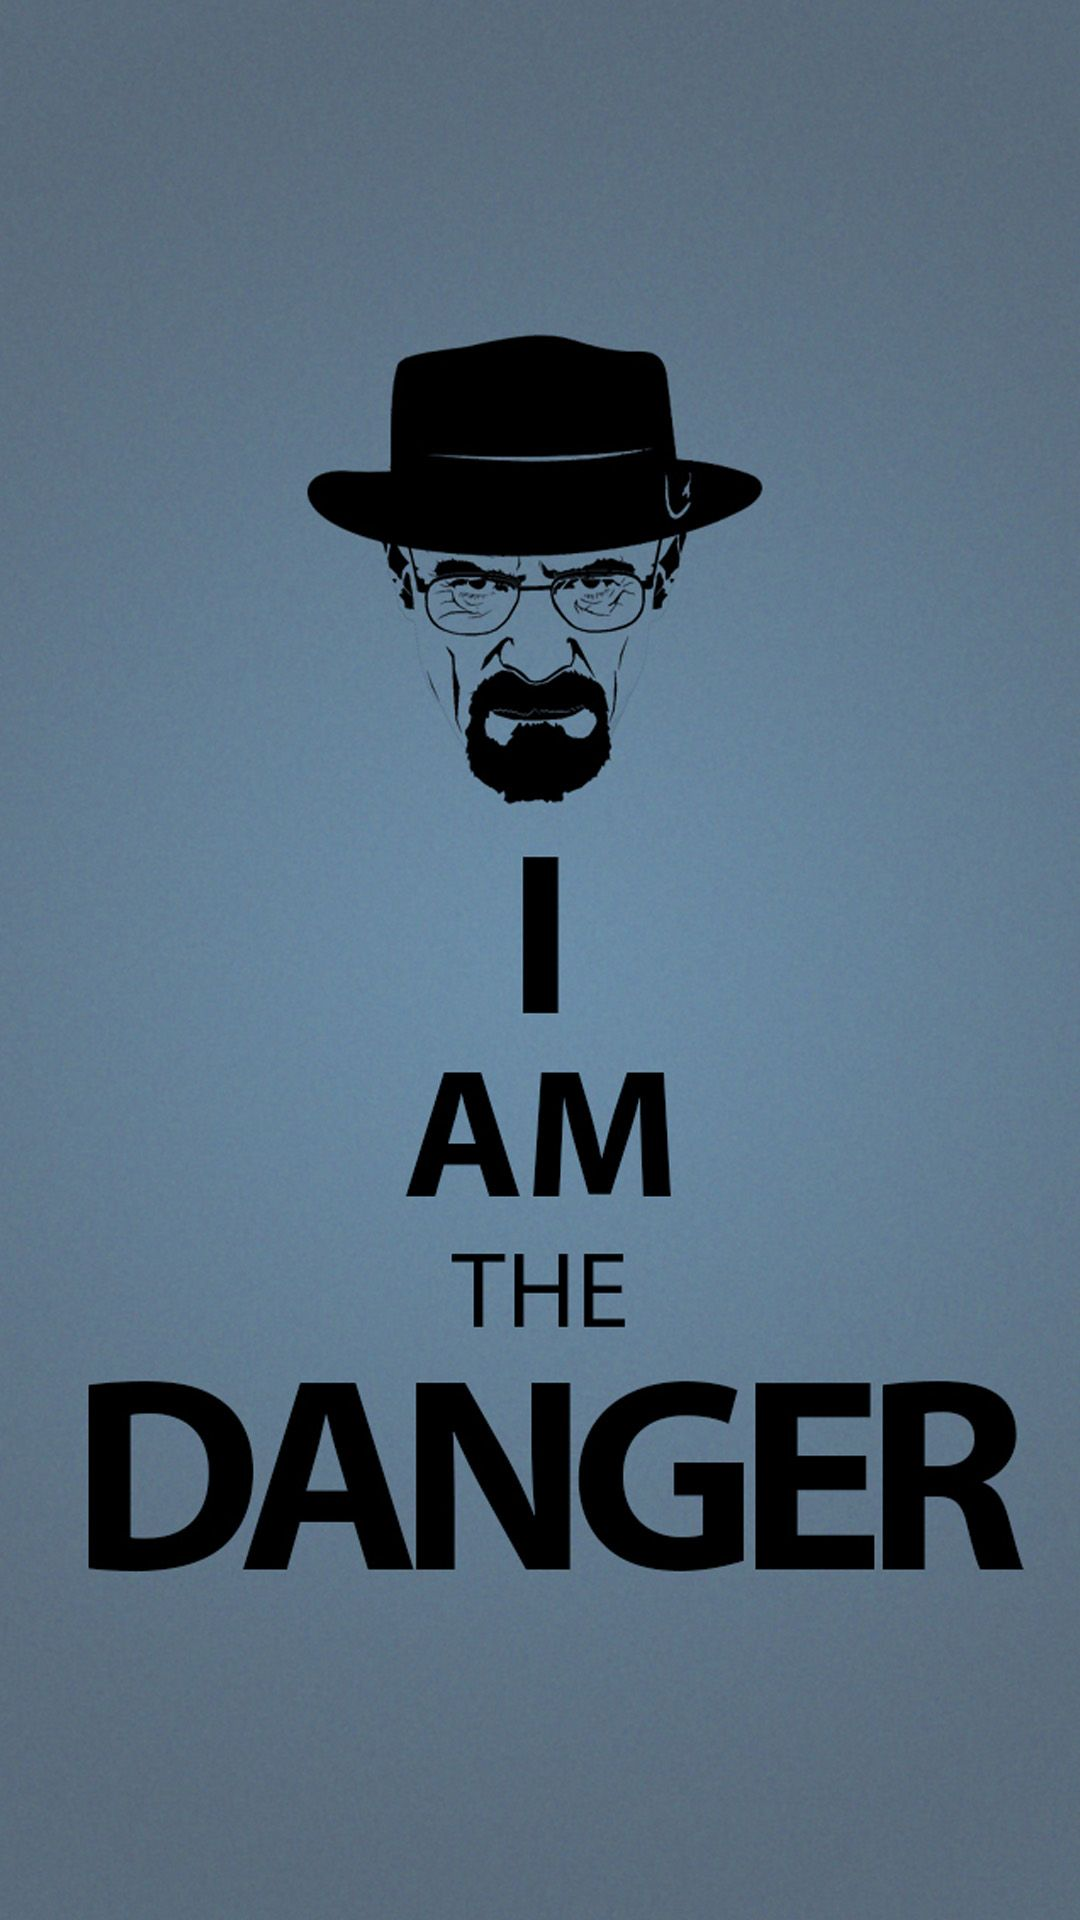 Download I Am The Danger 1080 x 1920 Wallpapers 4564353